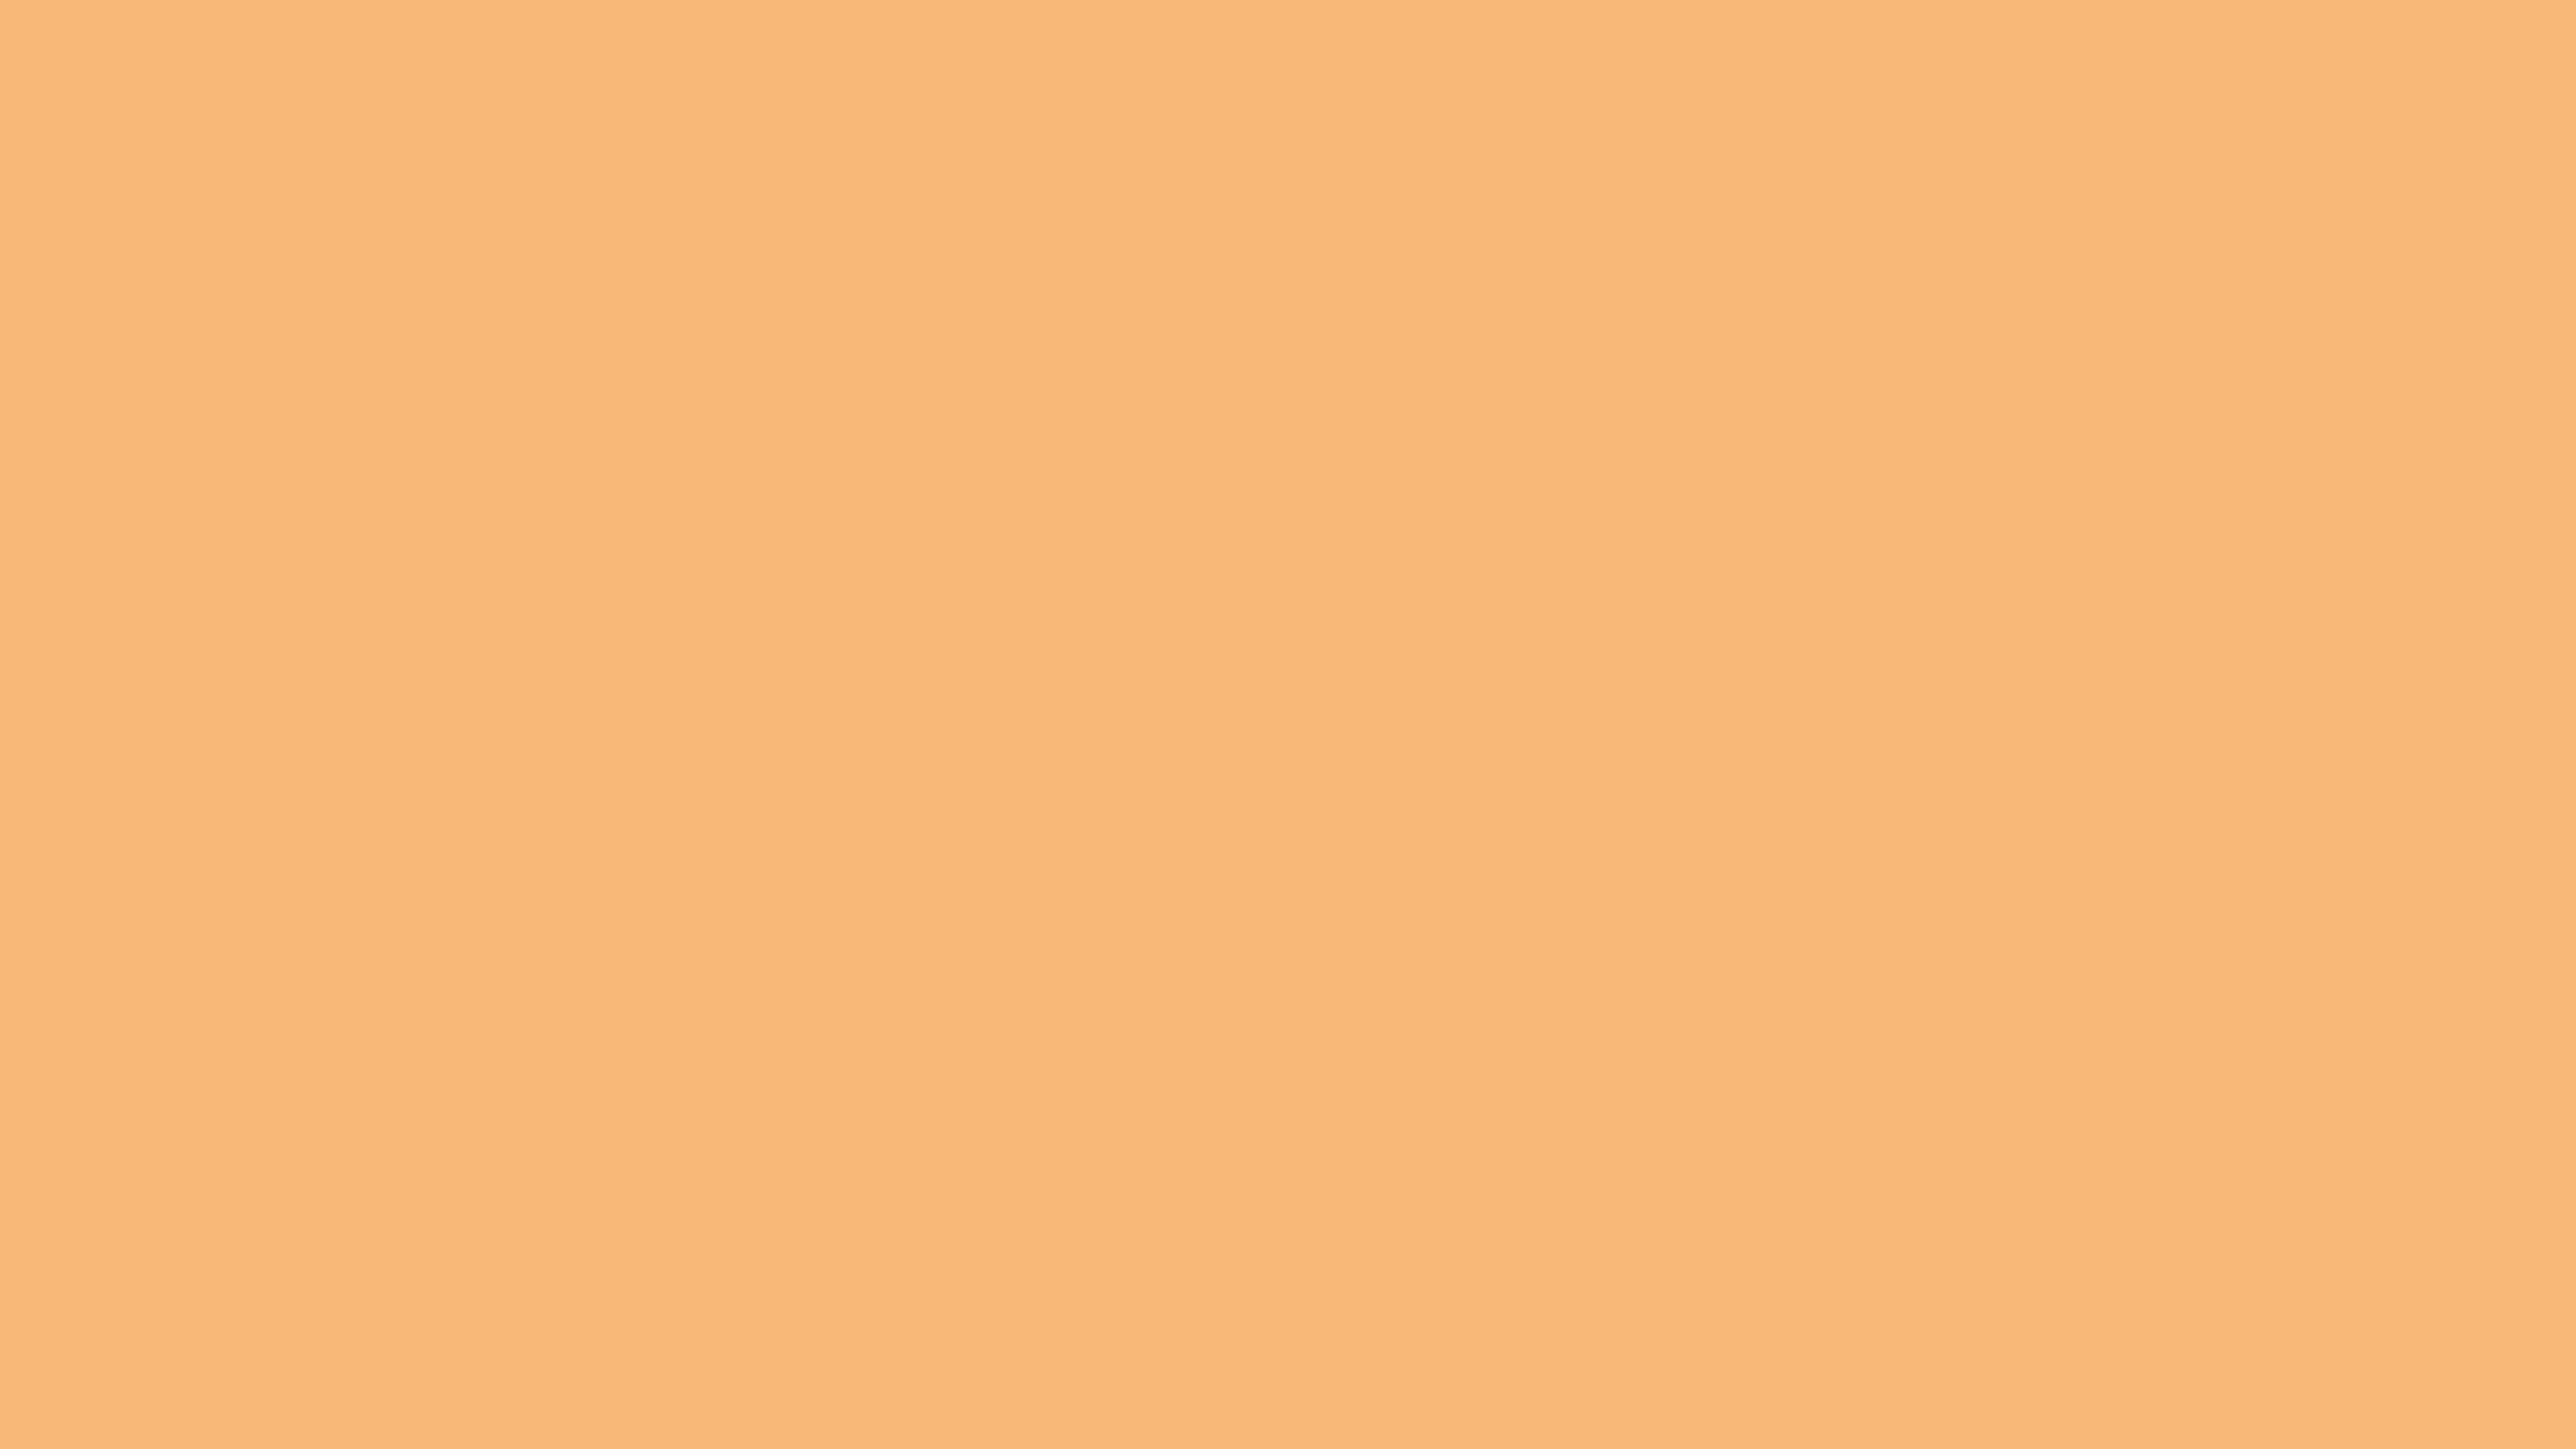 4096x2304 Mellow Apricot Solid Color Background